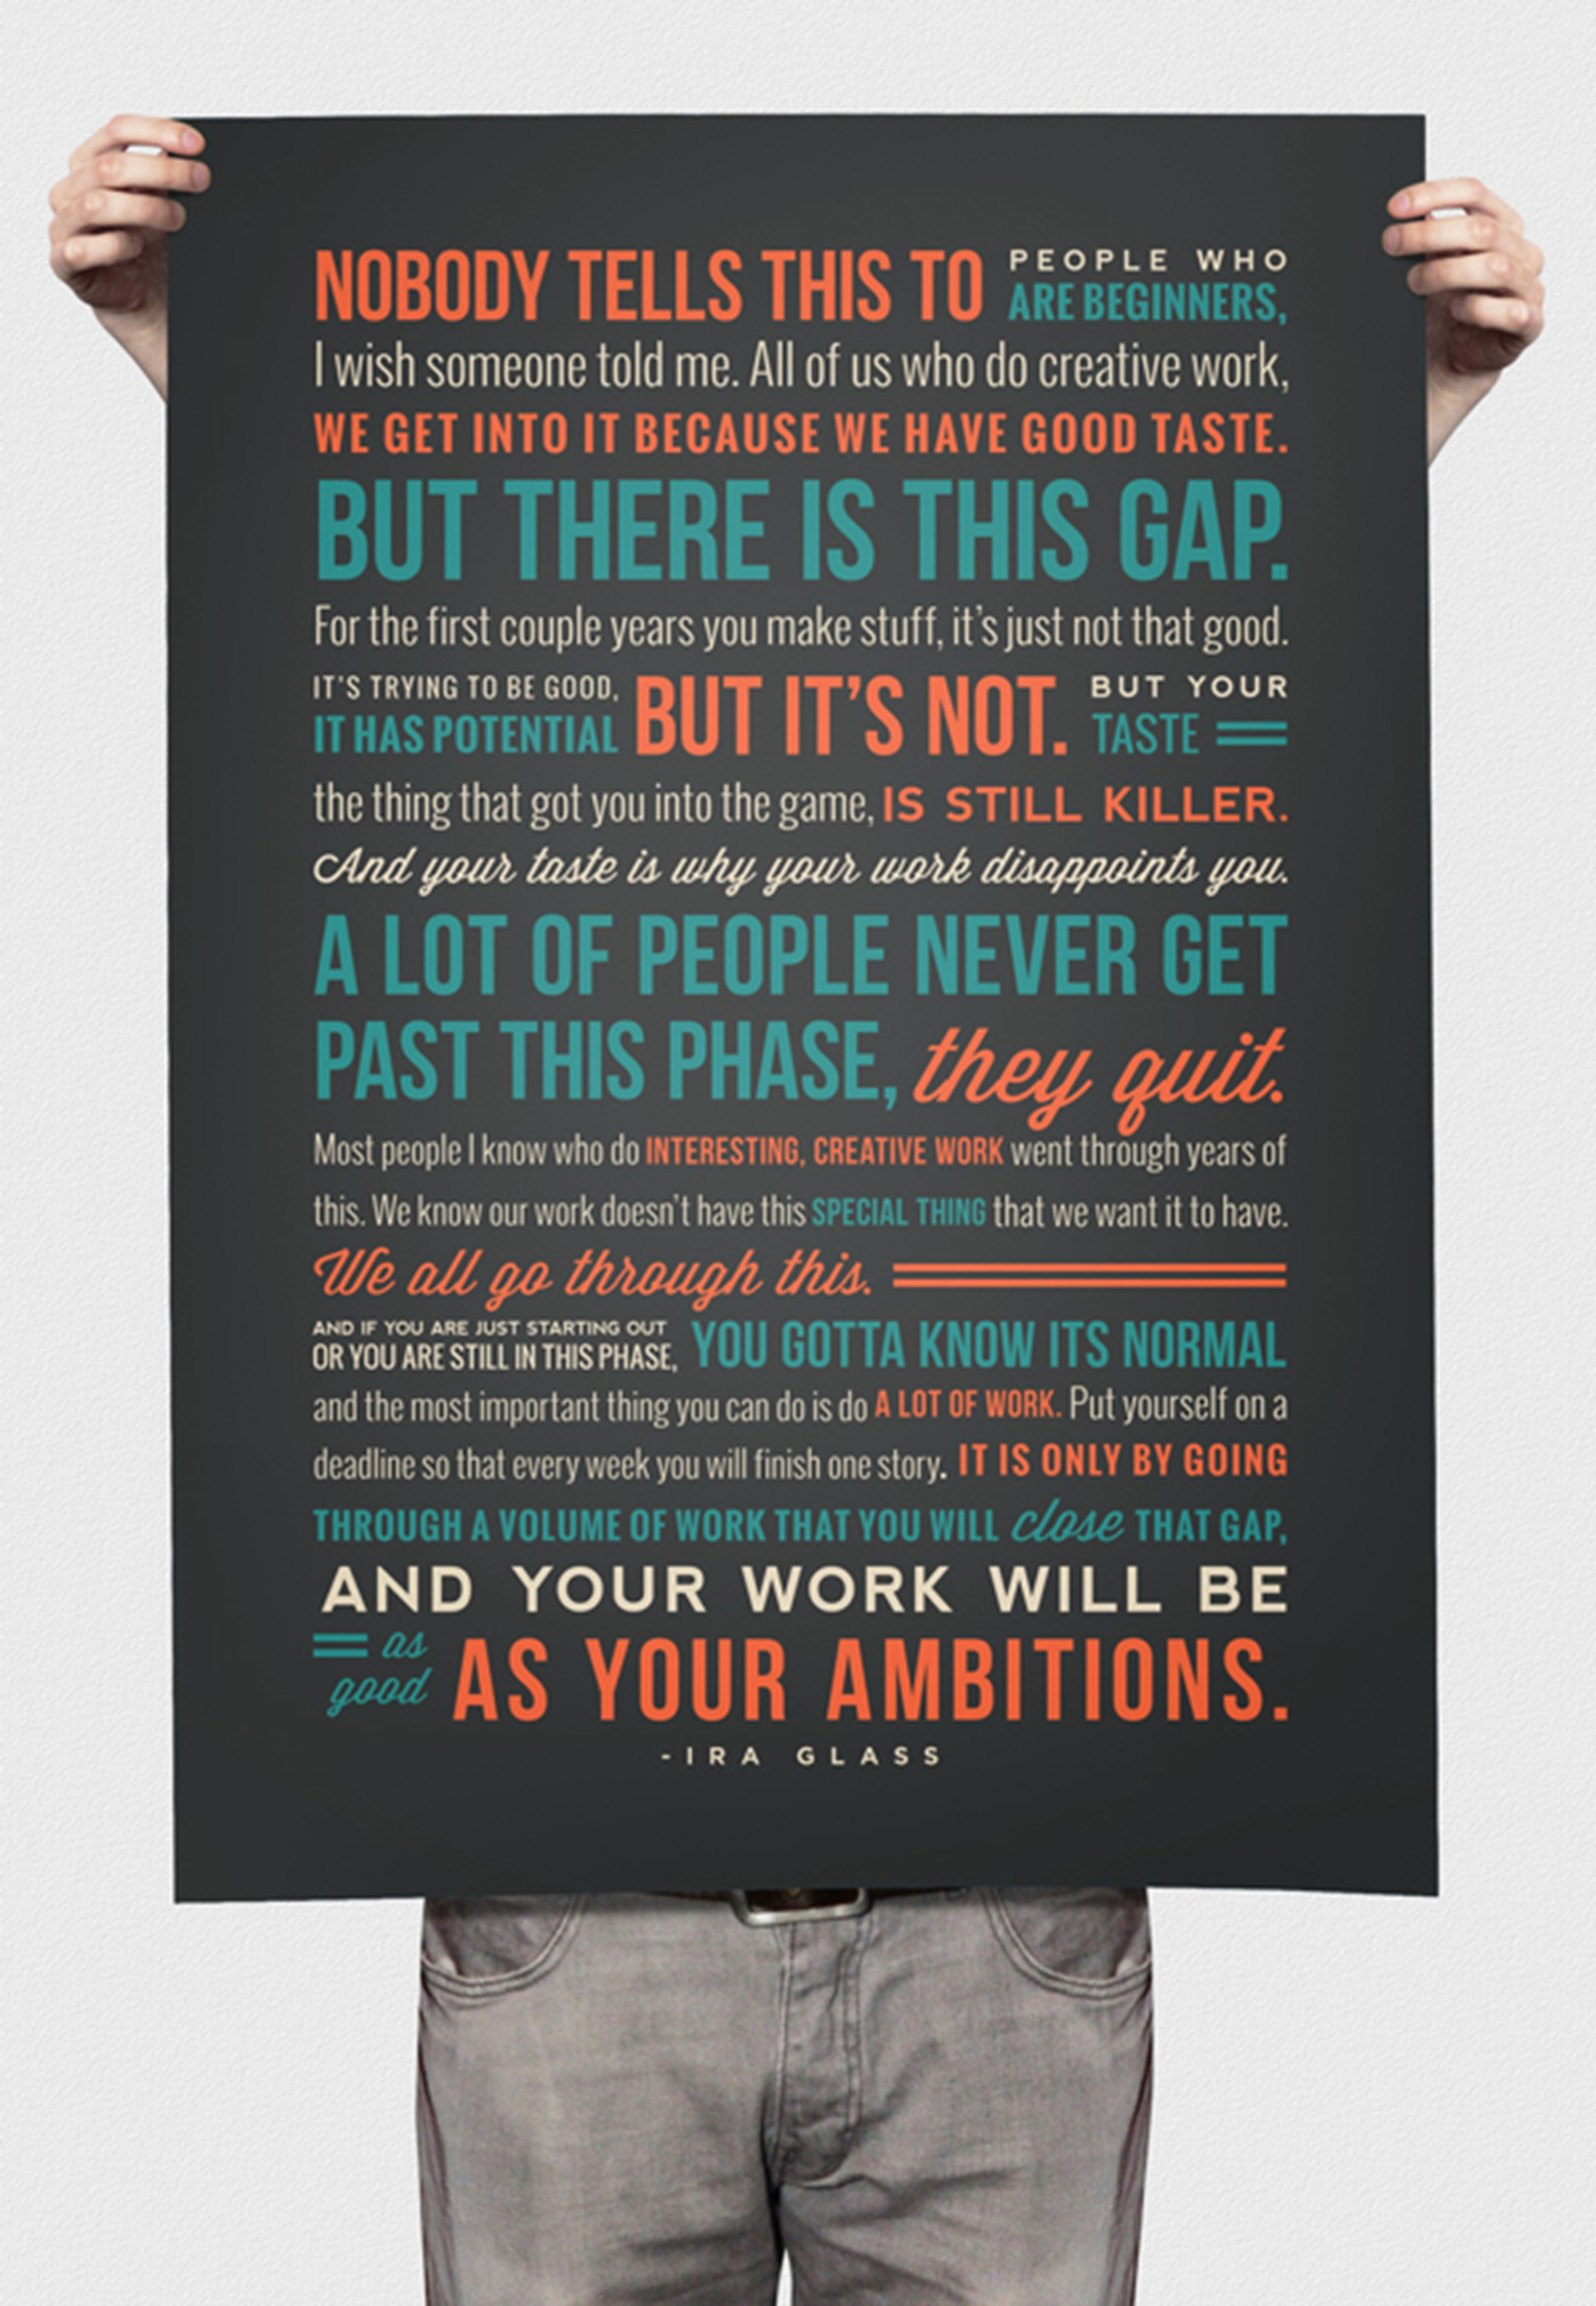 Wise words from Ira Glass on the topic of creative pursuit.